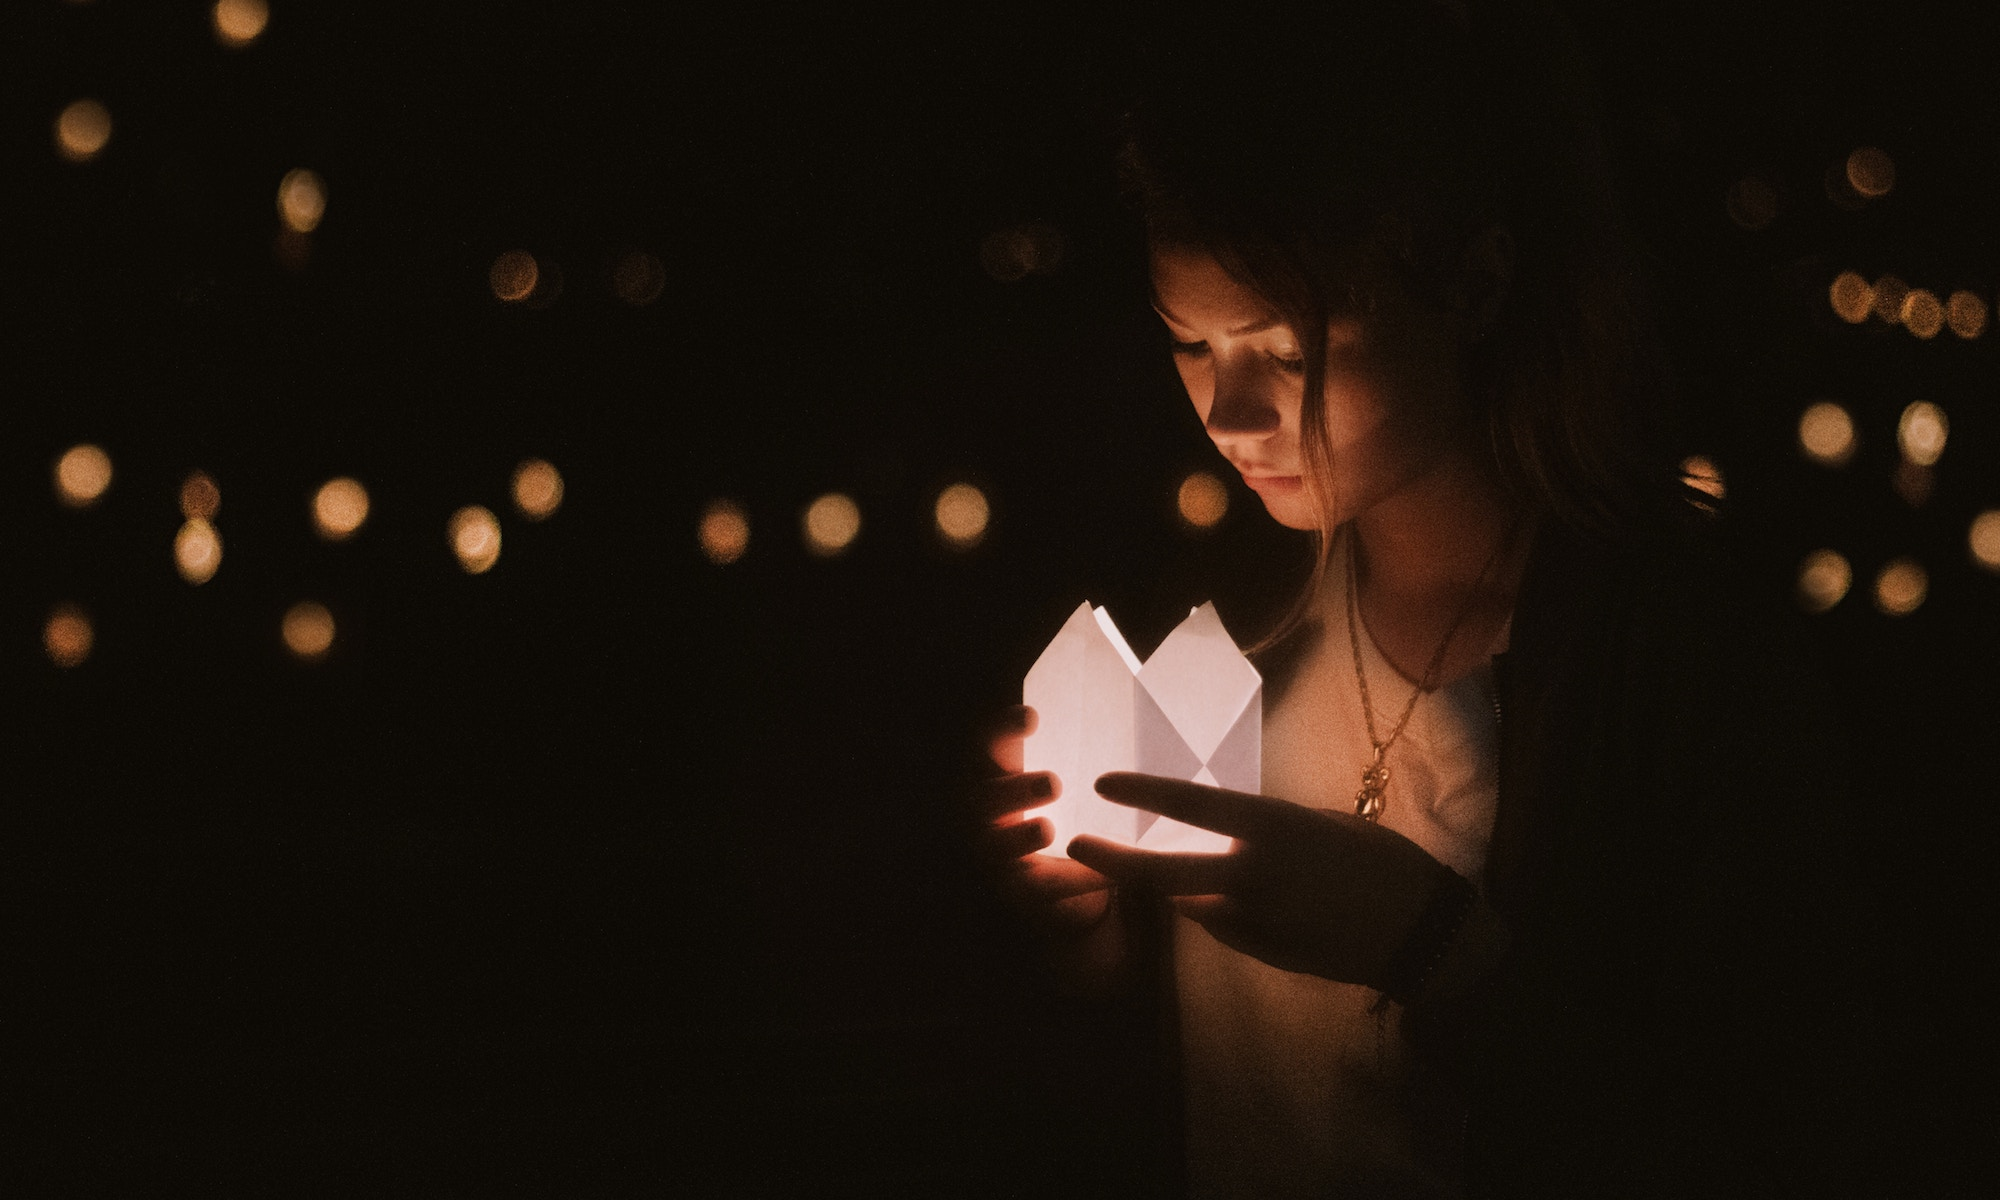 Empathy: Grieving teen with paper lamp